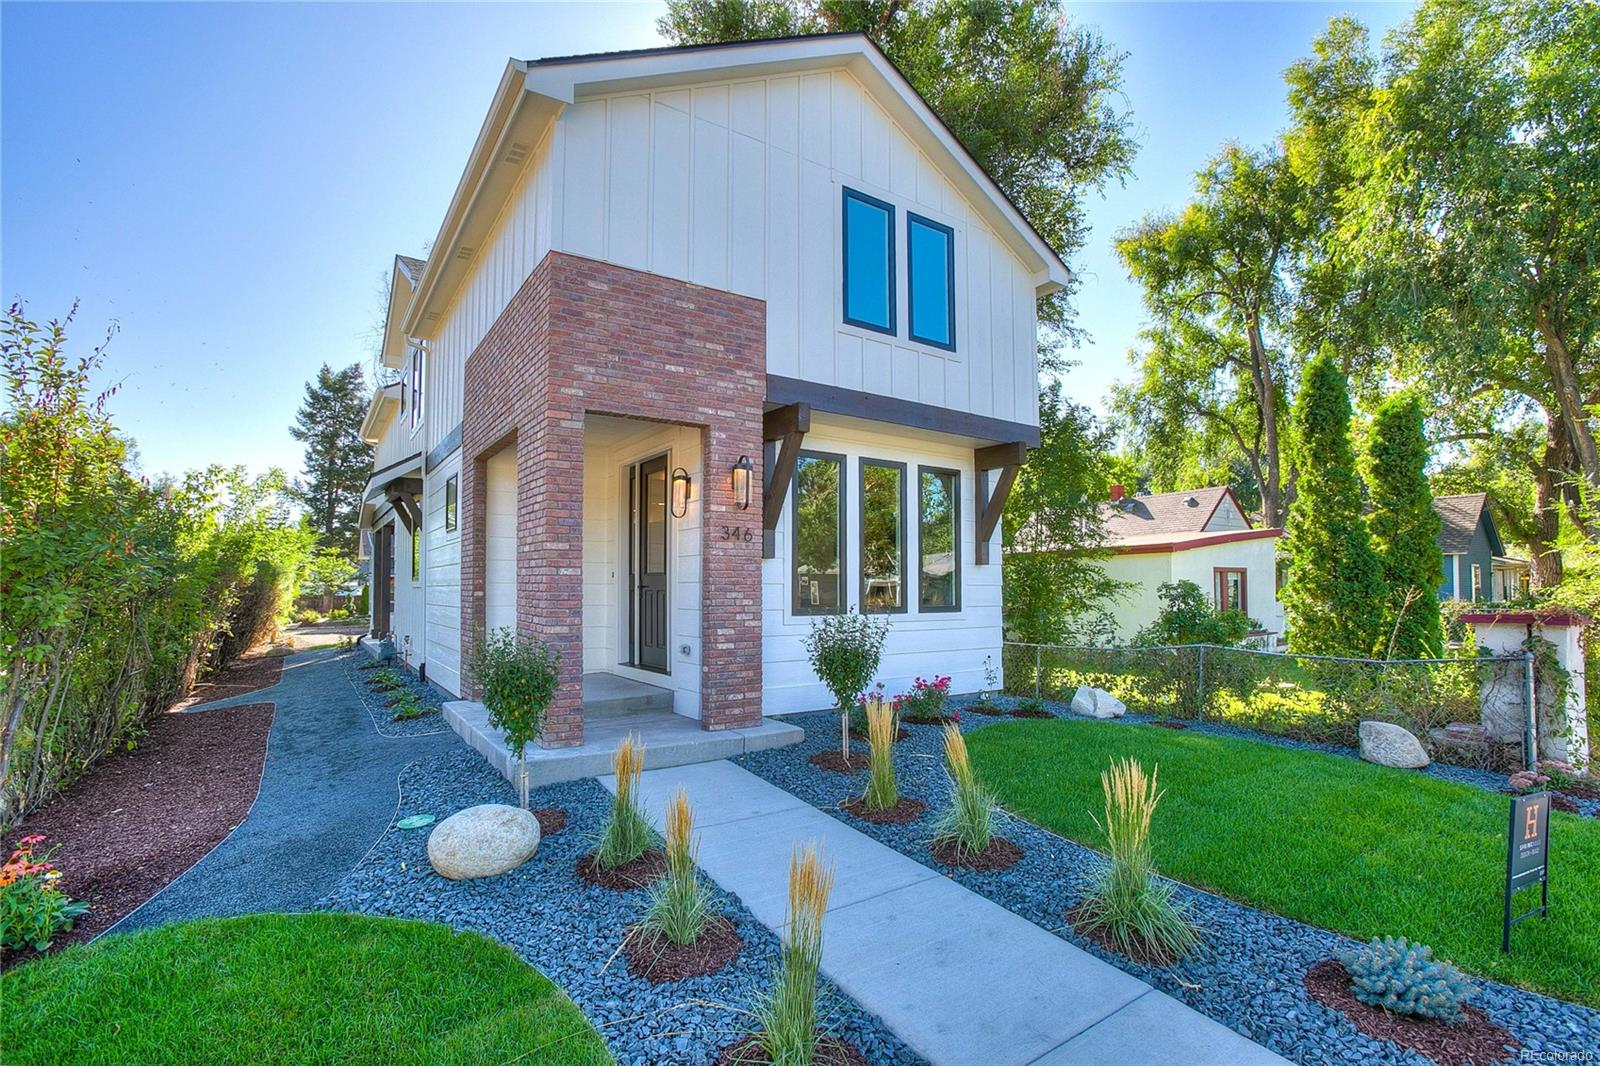 346 N Loomis Avenue, Fort Collins, CO 80521 - Fort Collins, CO real estate listing